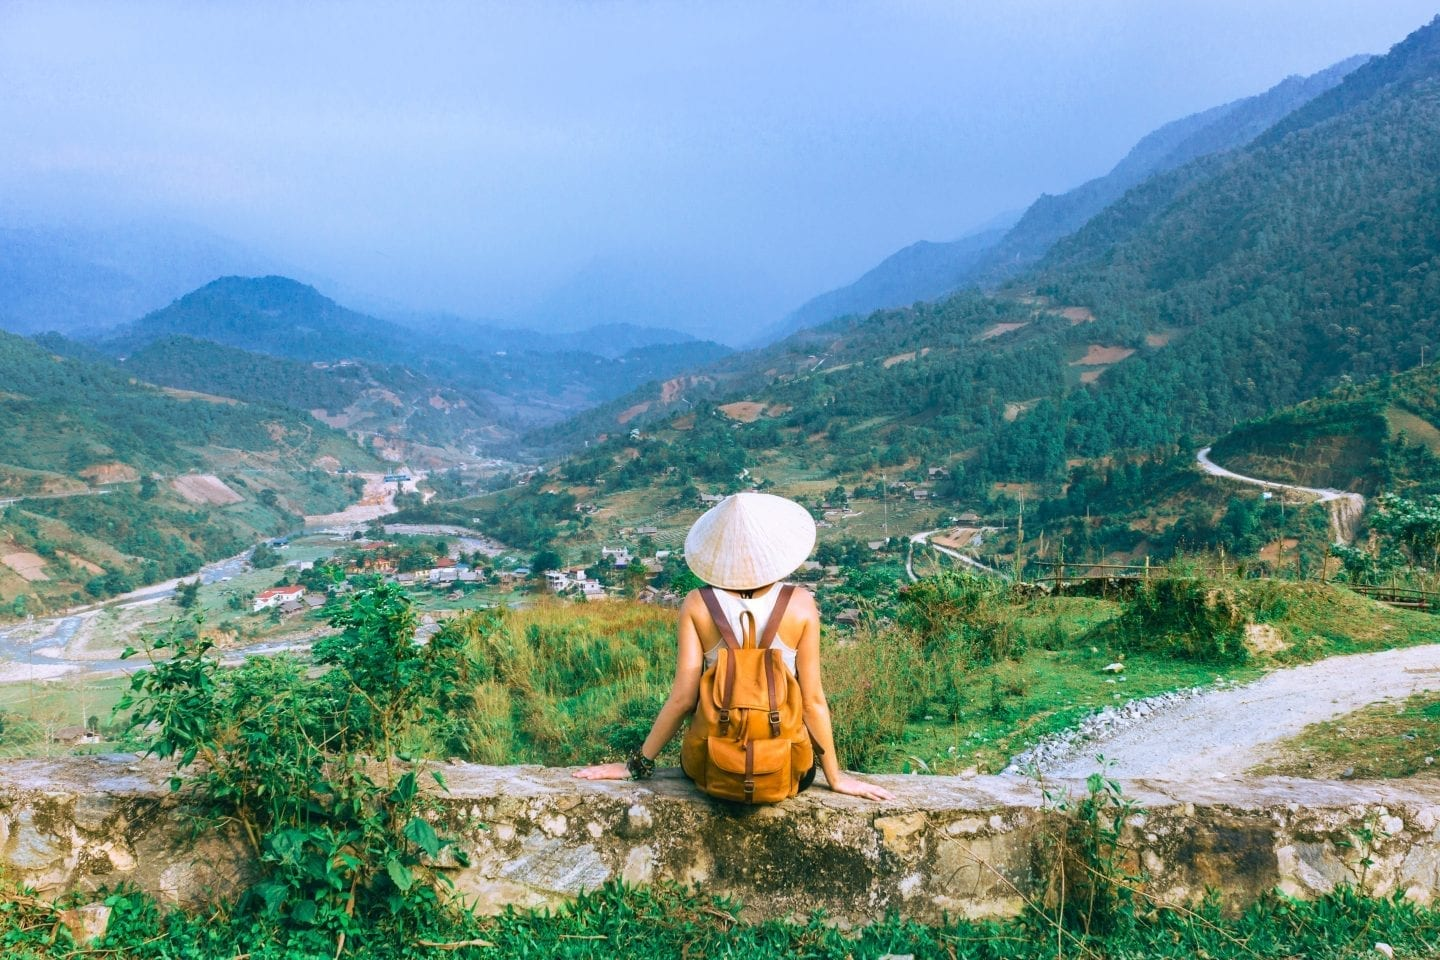 What You Need To Know About Trekking in Sapa, Vietnam | Wanderlust Movement | #vietnam #sapa #trekking #hiking #adventuretravel #backpacking #southeastasia